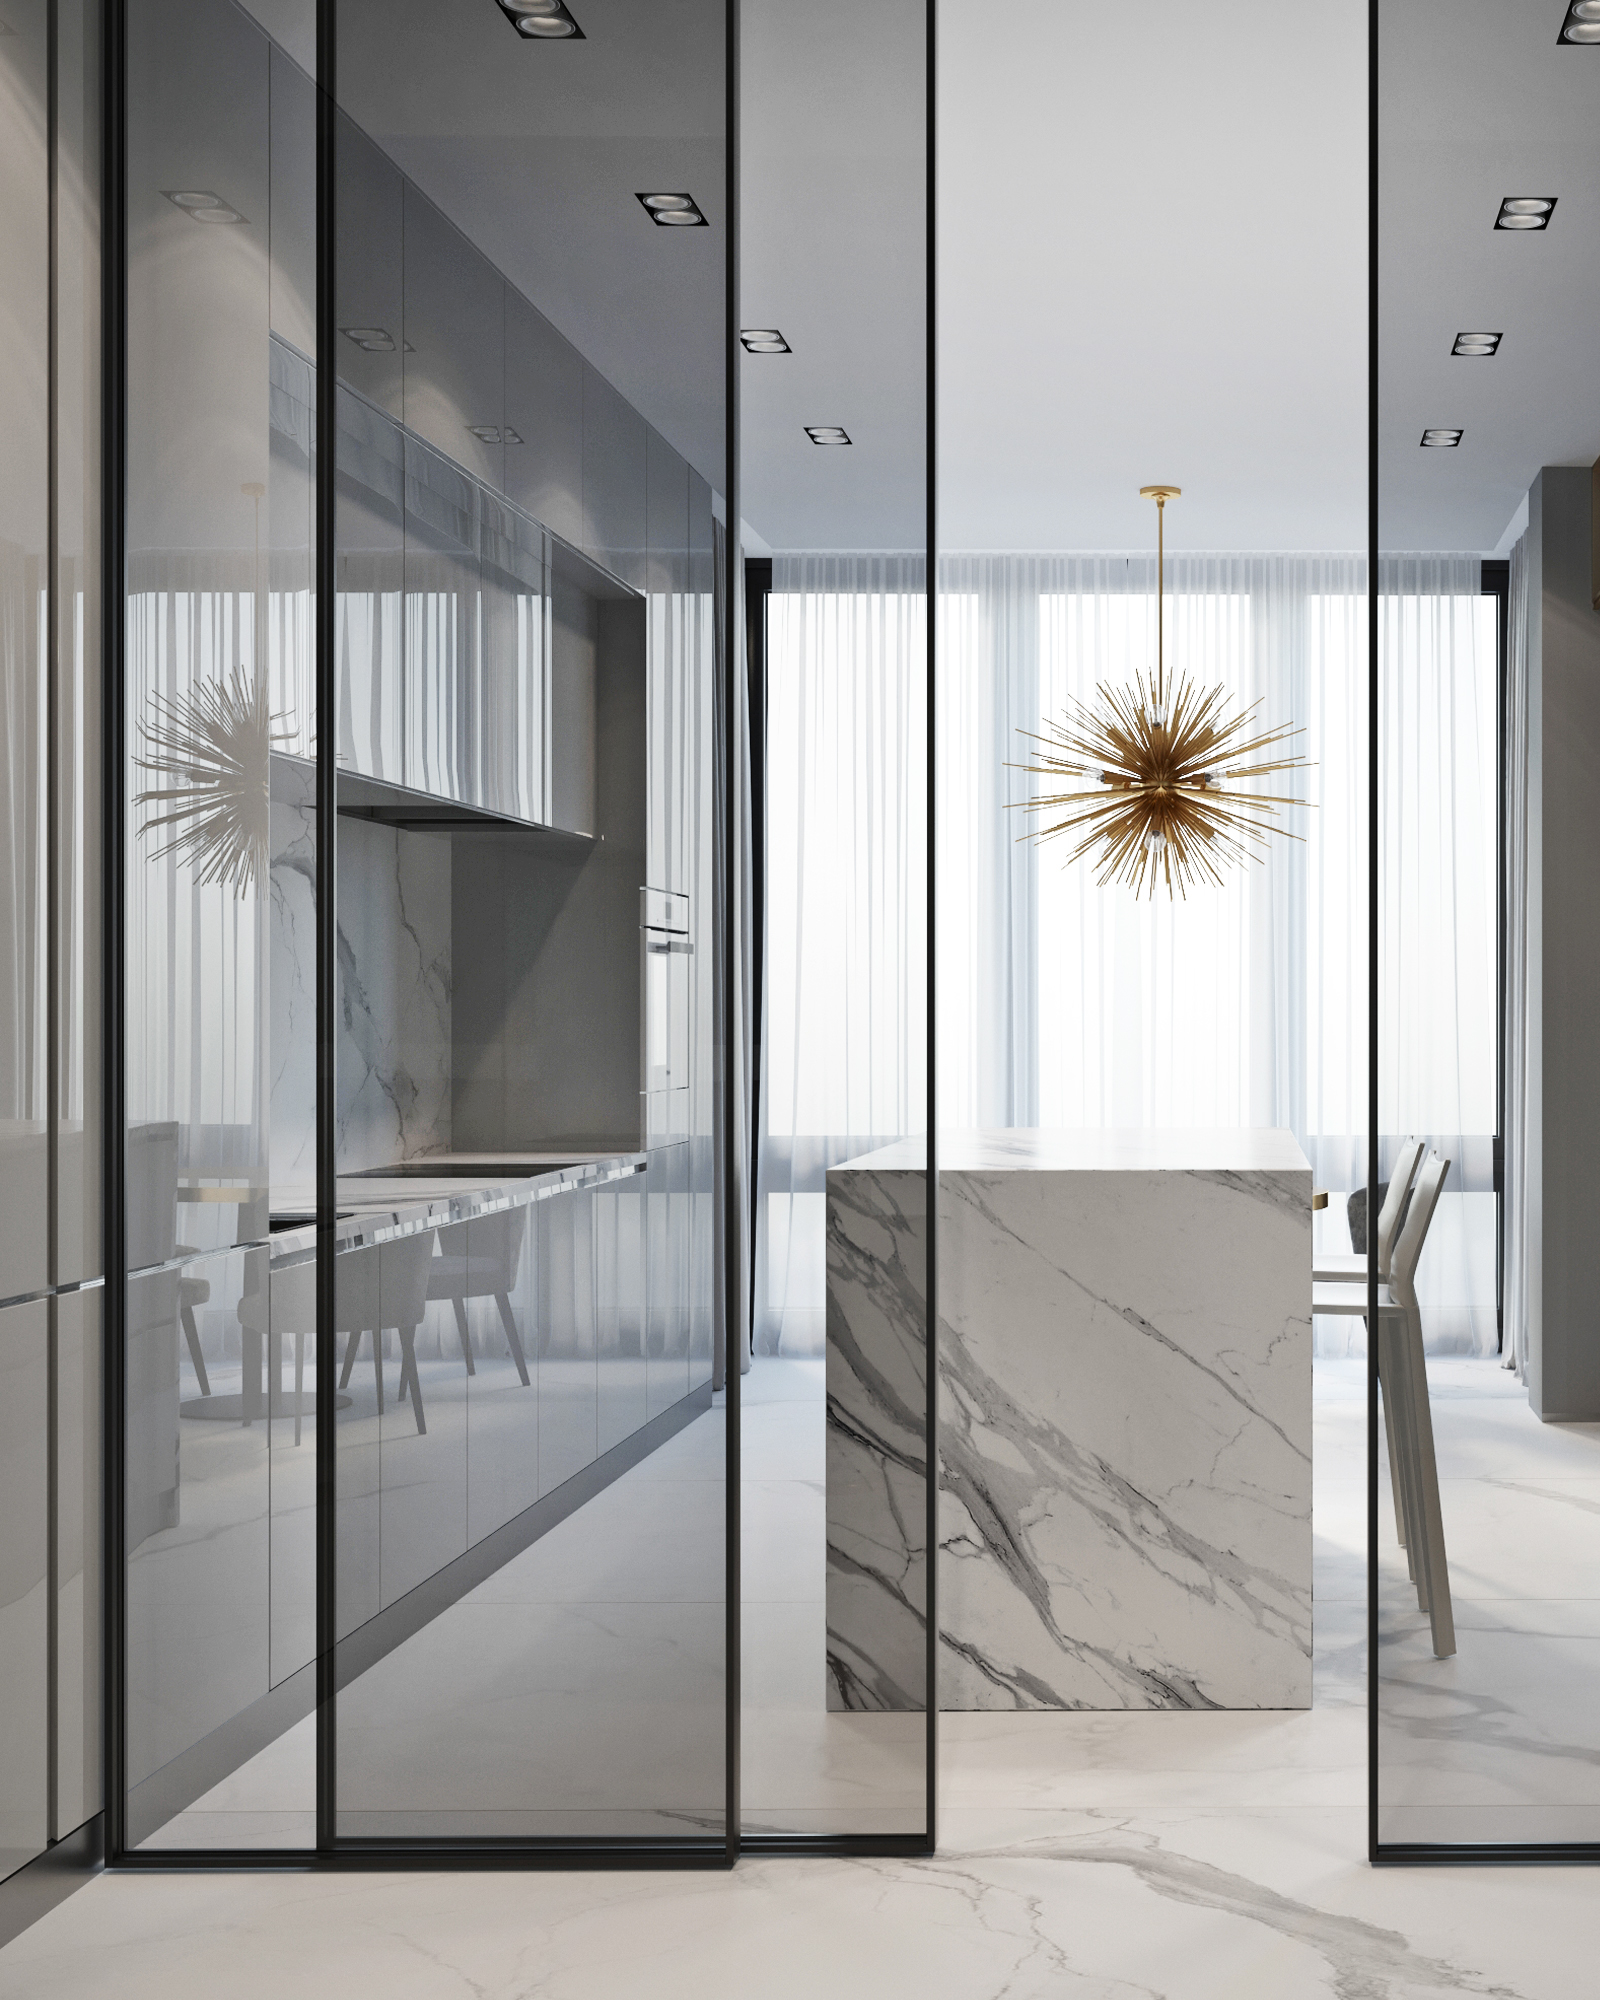 Shades Of Gray Modern Interior Design In Moscow! 5 shades of gray Shades Of Gray: Modern Interior Design In Moscow! Shades Of Gray Modern Interior Design In Moscow 5